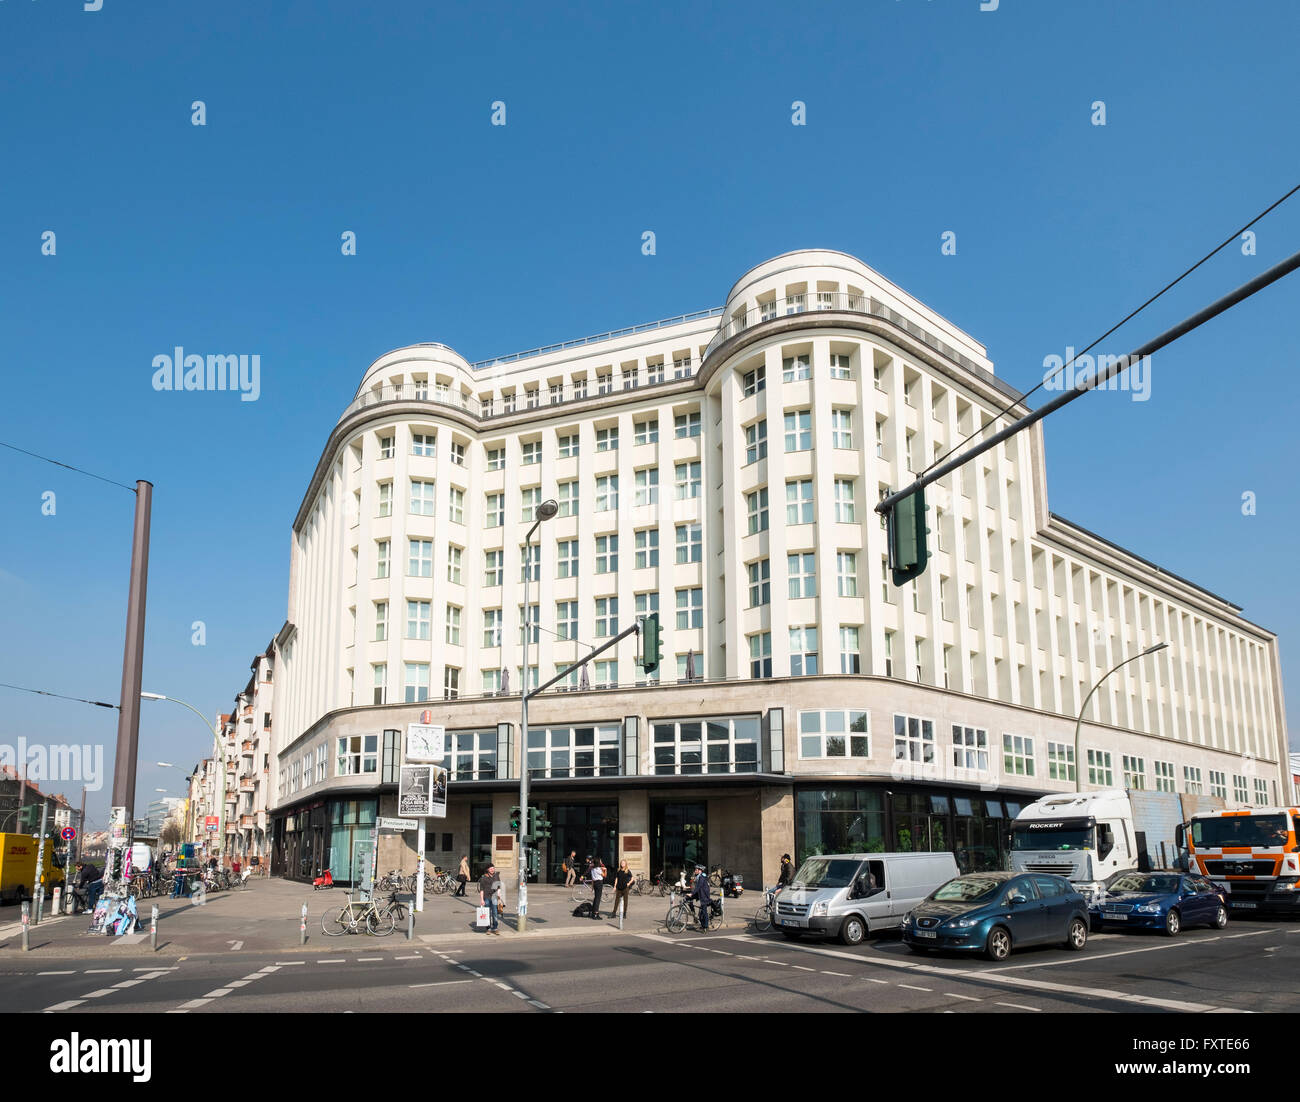 Exterior view of SOHO House hotel in Mitte Berlin Germany - Stock Image